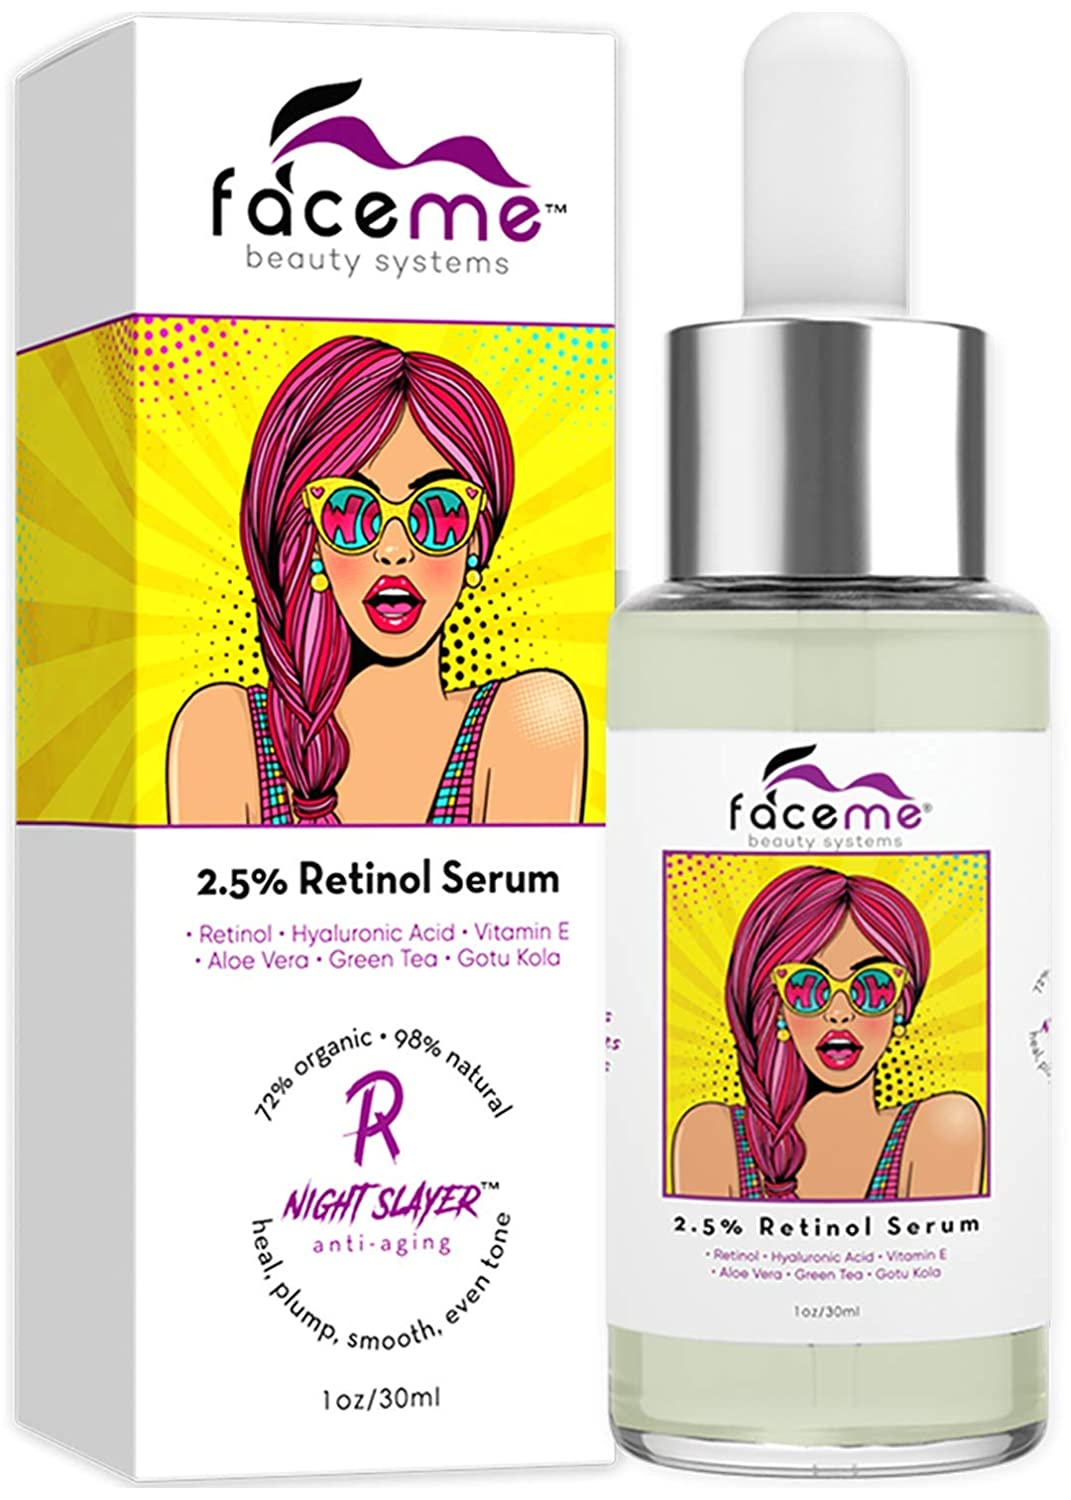 Retinol Serum 2.5% Clinical Strength for FACE. Organic & Natural, Supreme Anti-aging formula with Super Hydrating Hyaluronic Acid, Antioxidants & Plant Botanicals. Builds Collagen, Fights Acne. 1oz